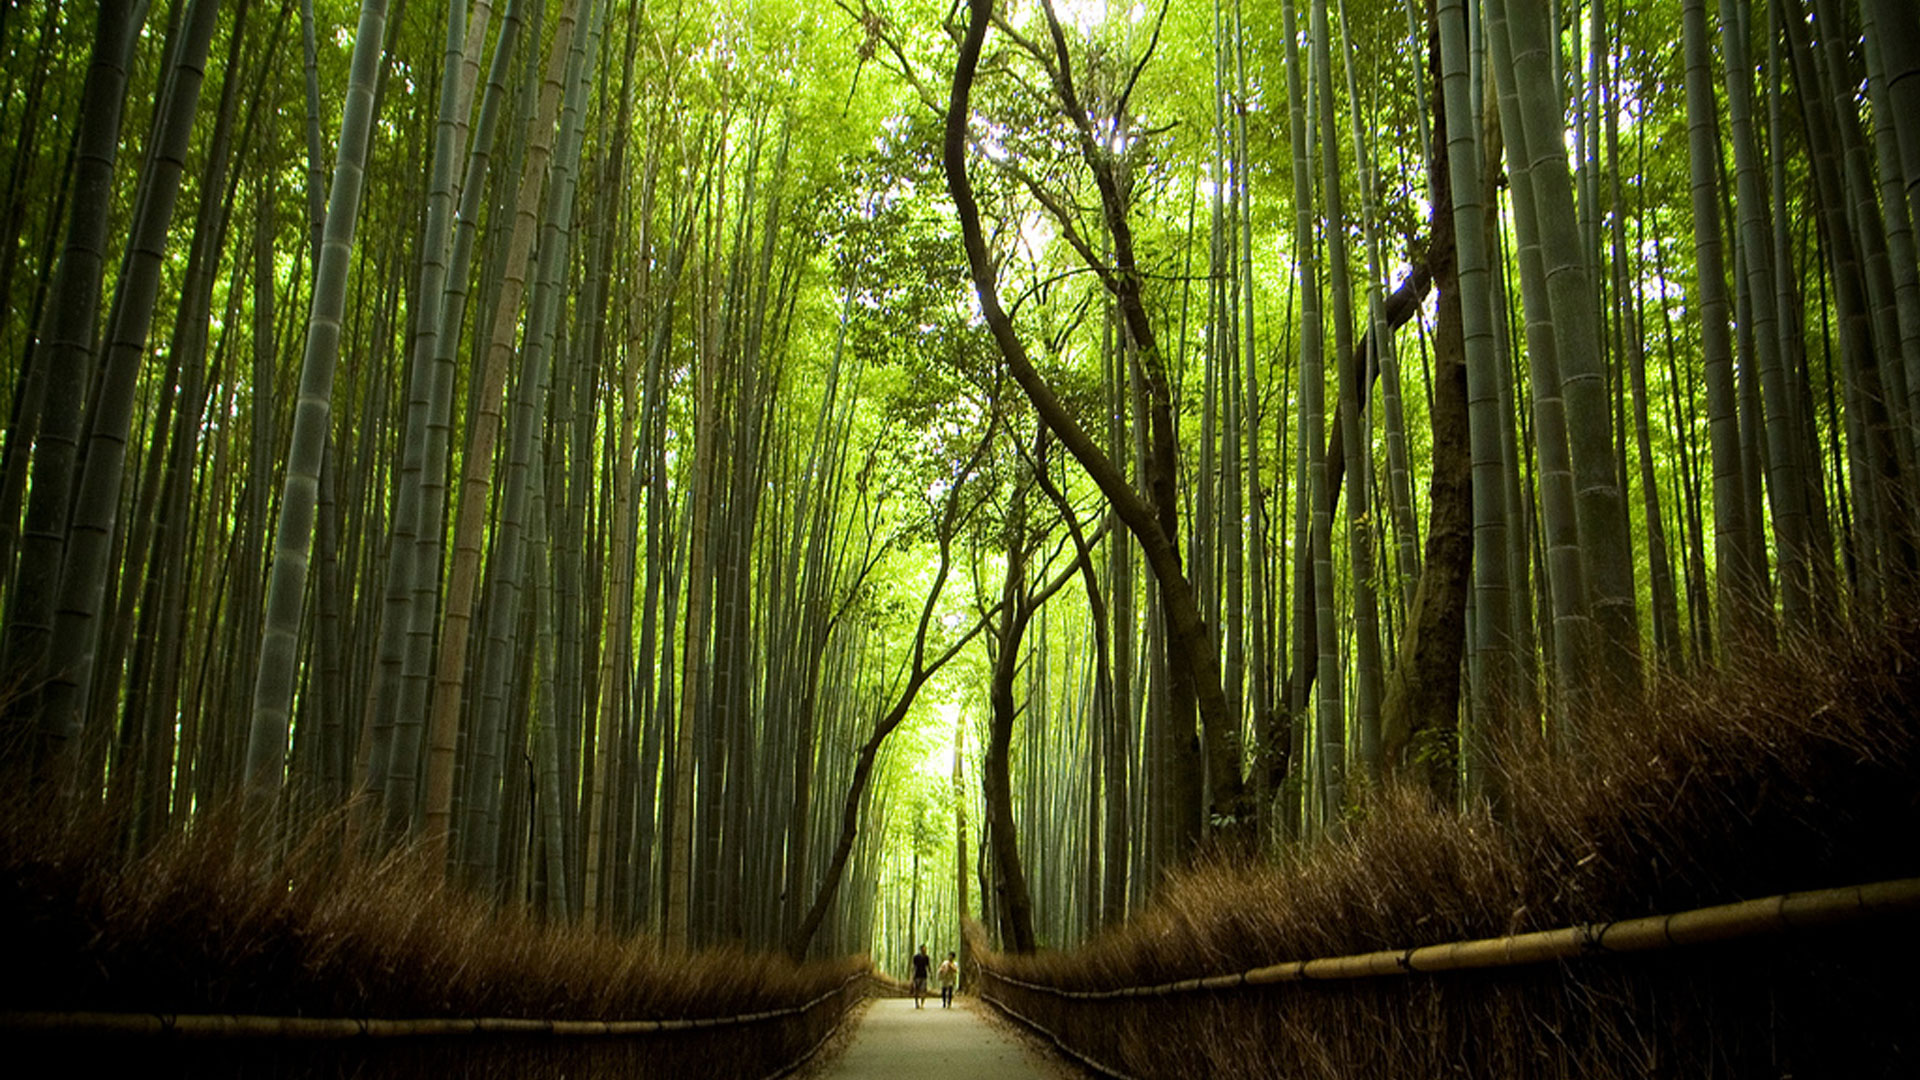 image-sagano-bamboo-forest-is-beautiful-whistling